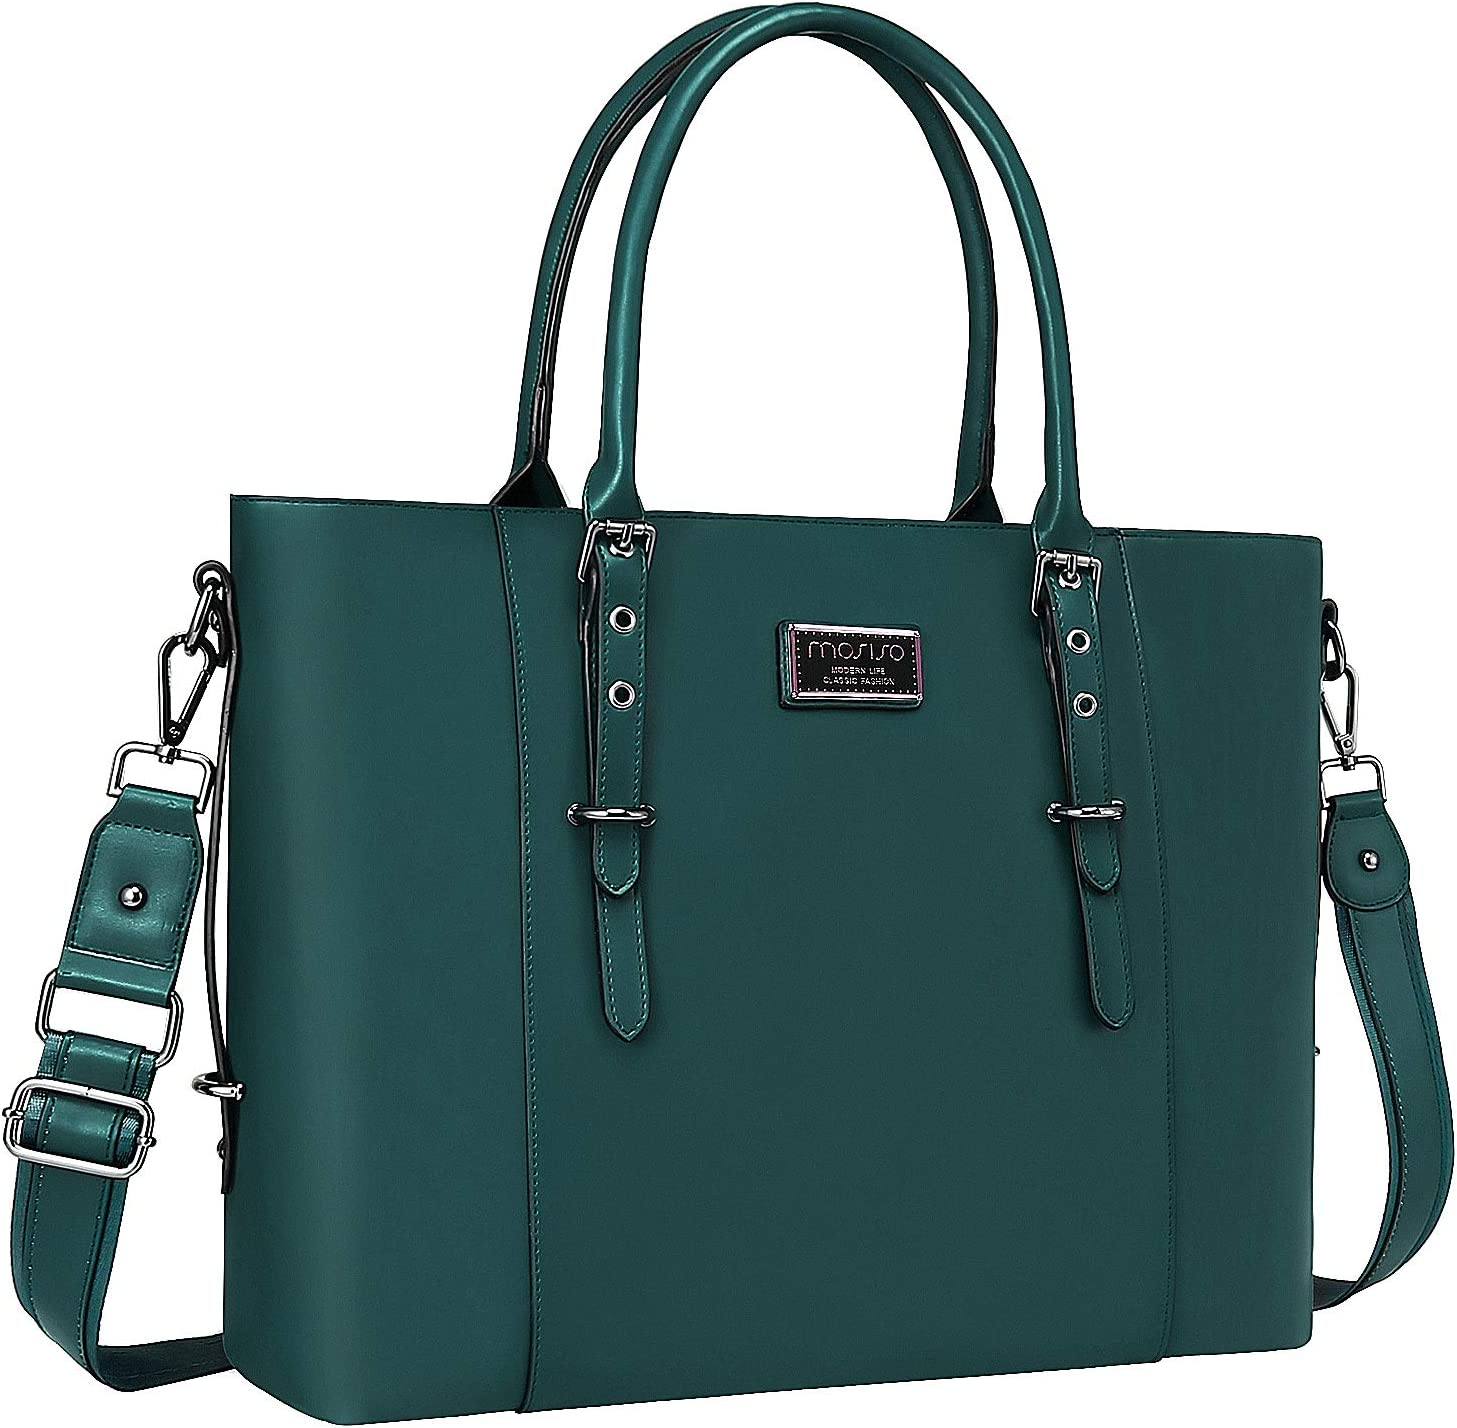 MOSISO PU Leather Laptop Tote Bag for Women (Up to 17.3 inch), Deep Teal